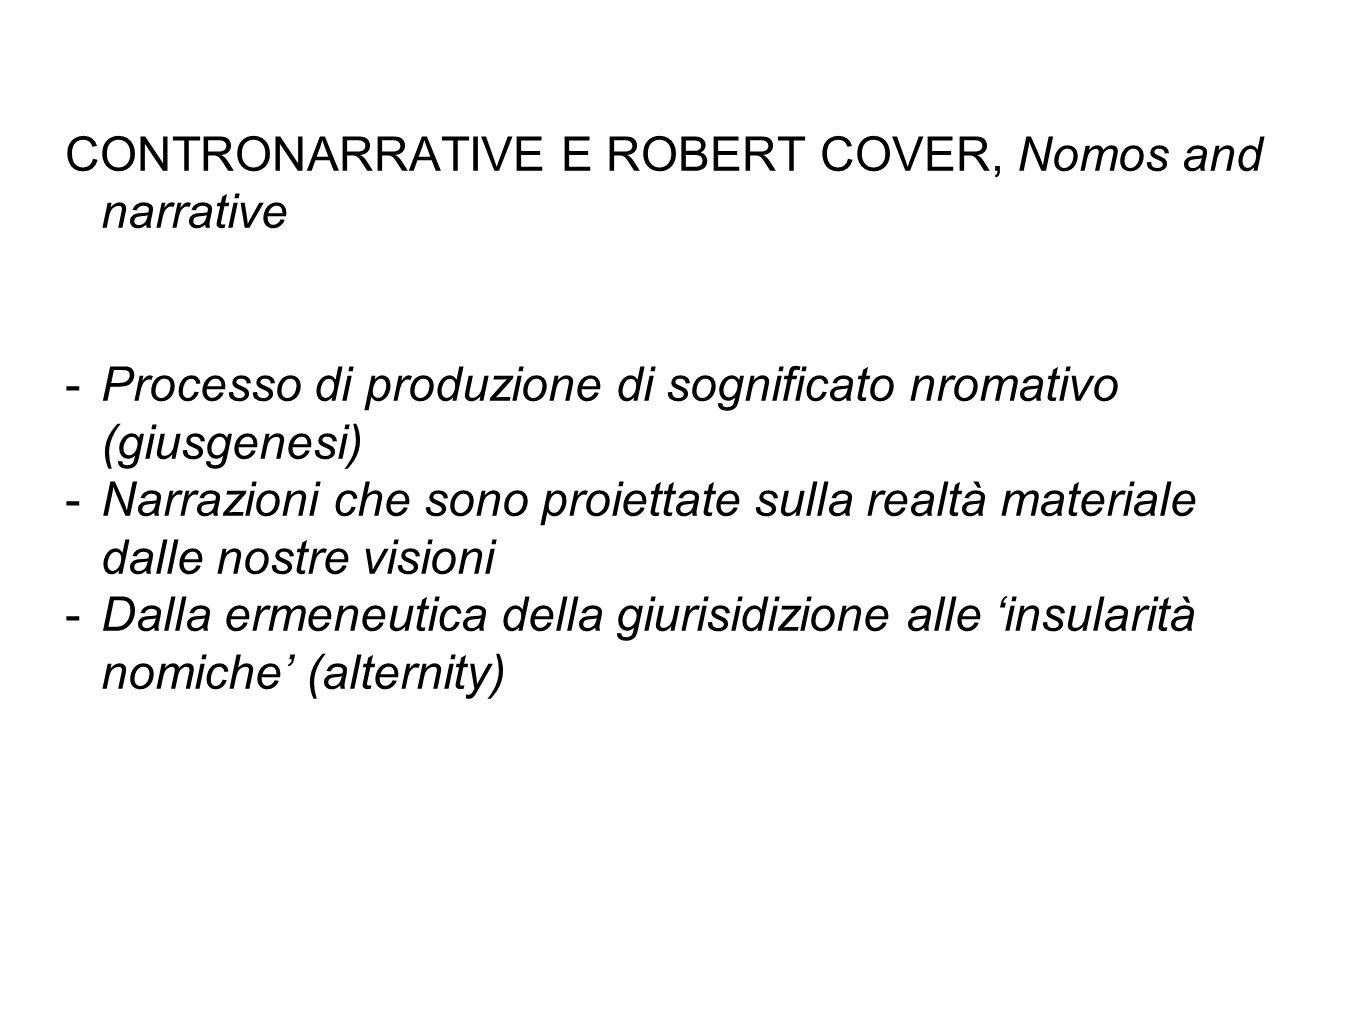 CONTRONARRATIVE E ROBERT COVER, Nomos and narrative